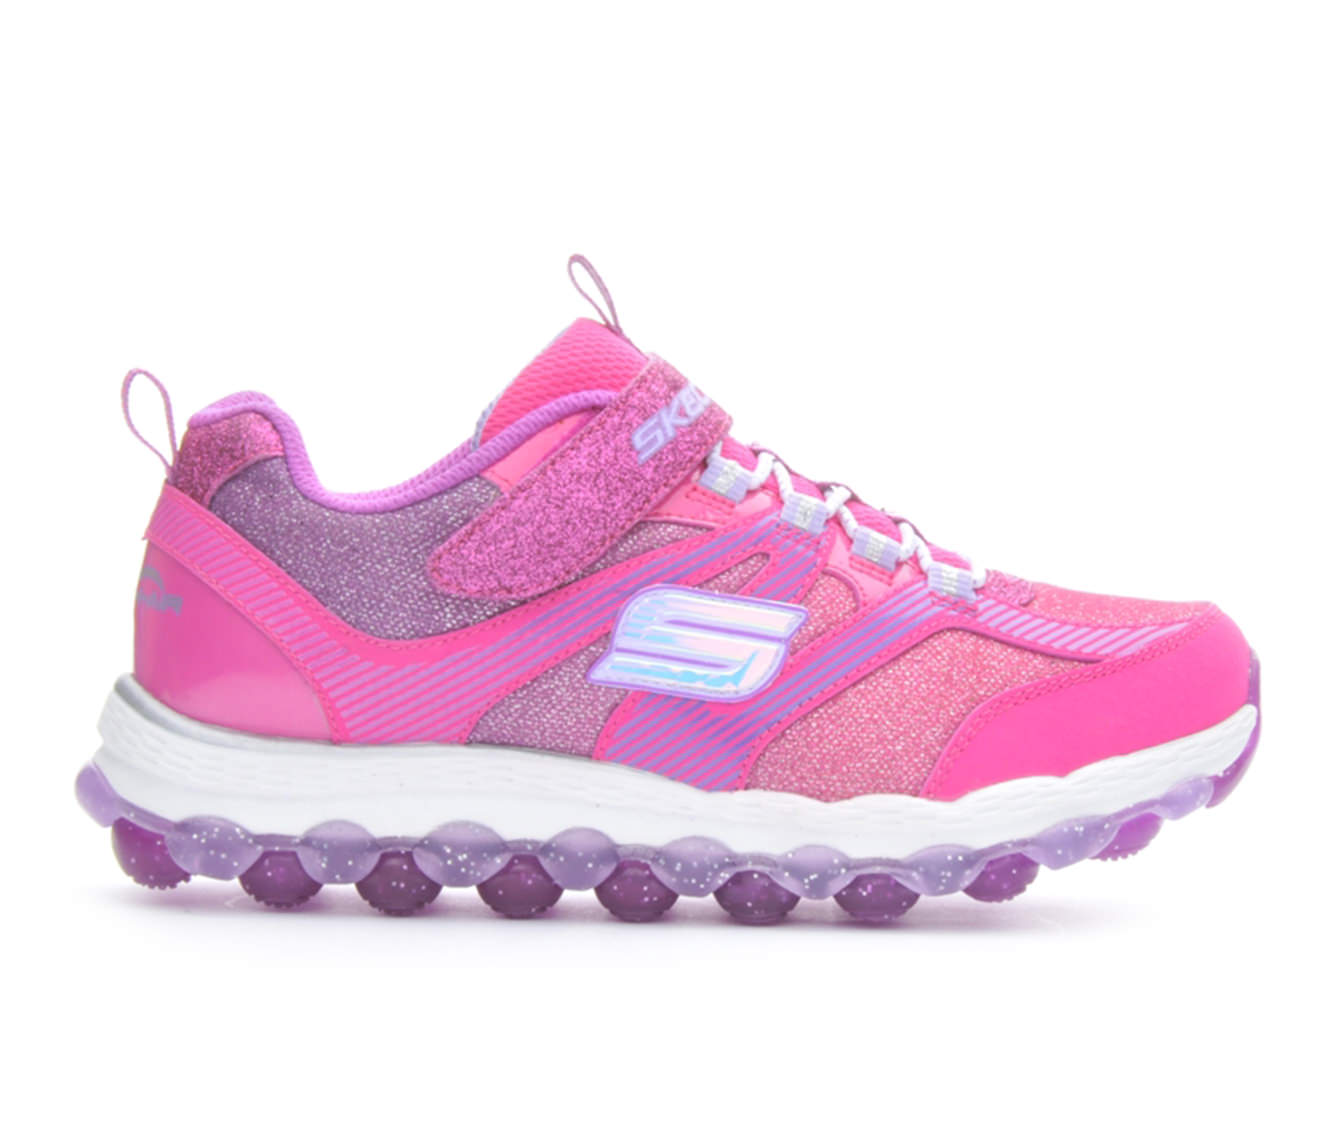 Girls' Skechers Skech Air Ultra -Glam It Up Sneakers (Pink)